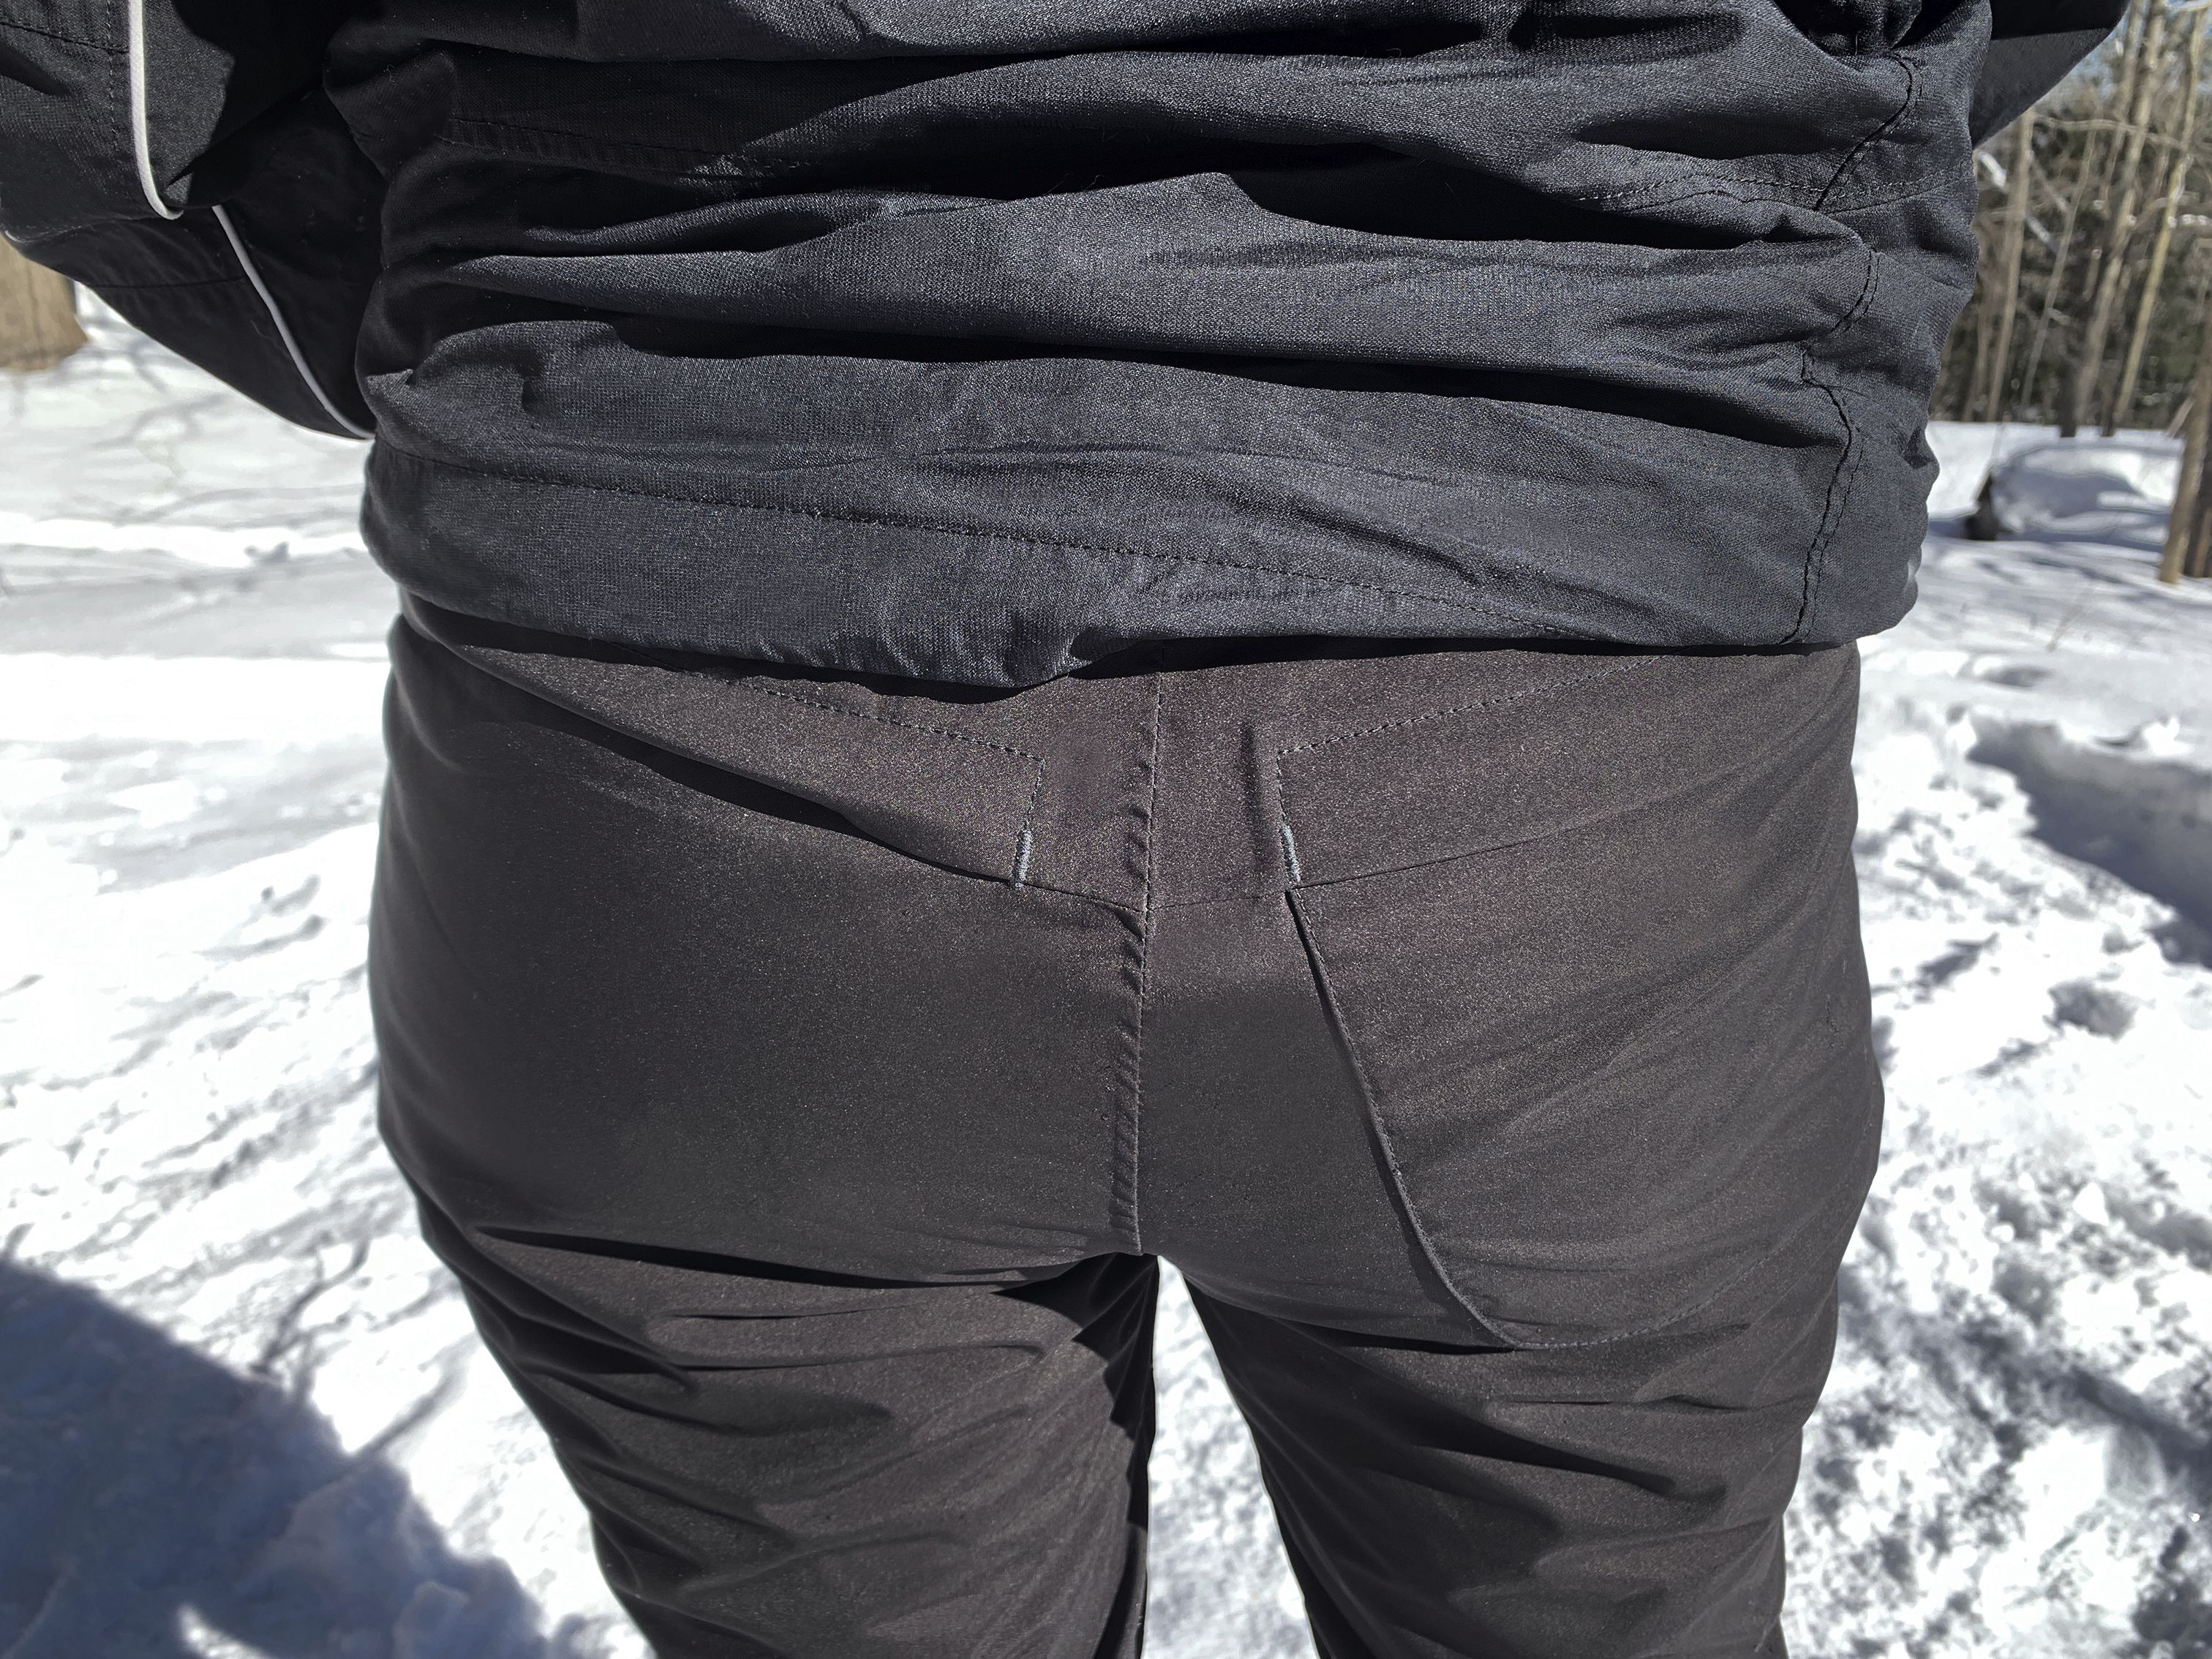 ceb054907 The 8 Best Women's Ski Pants of 2019